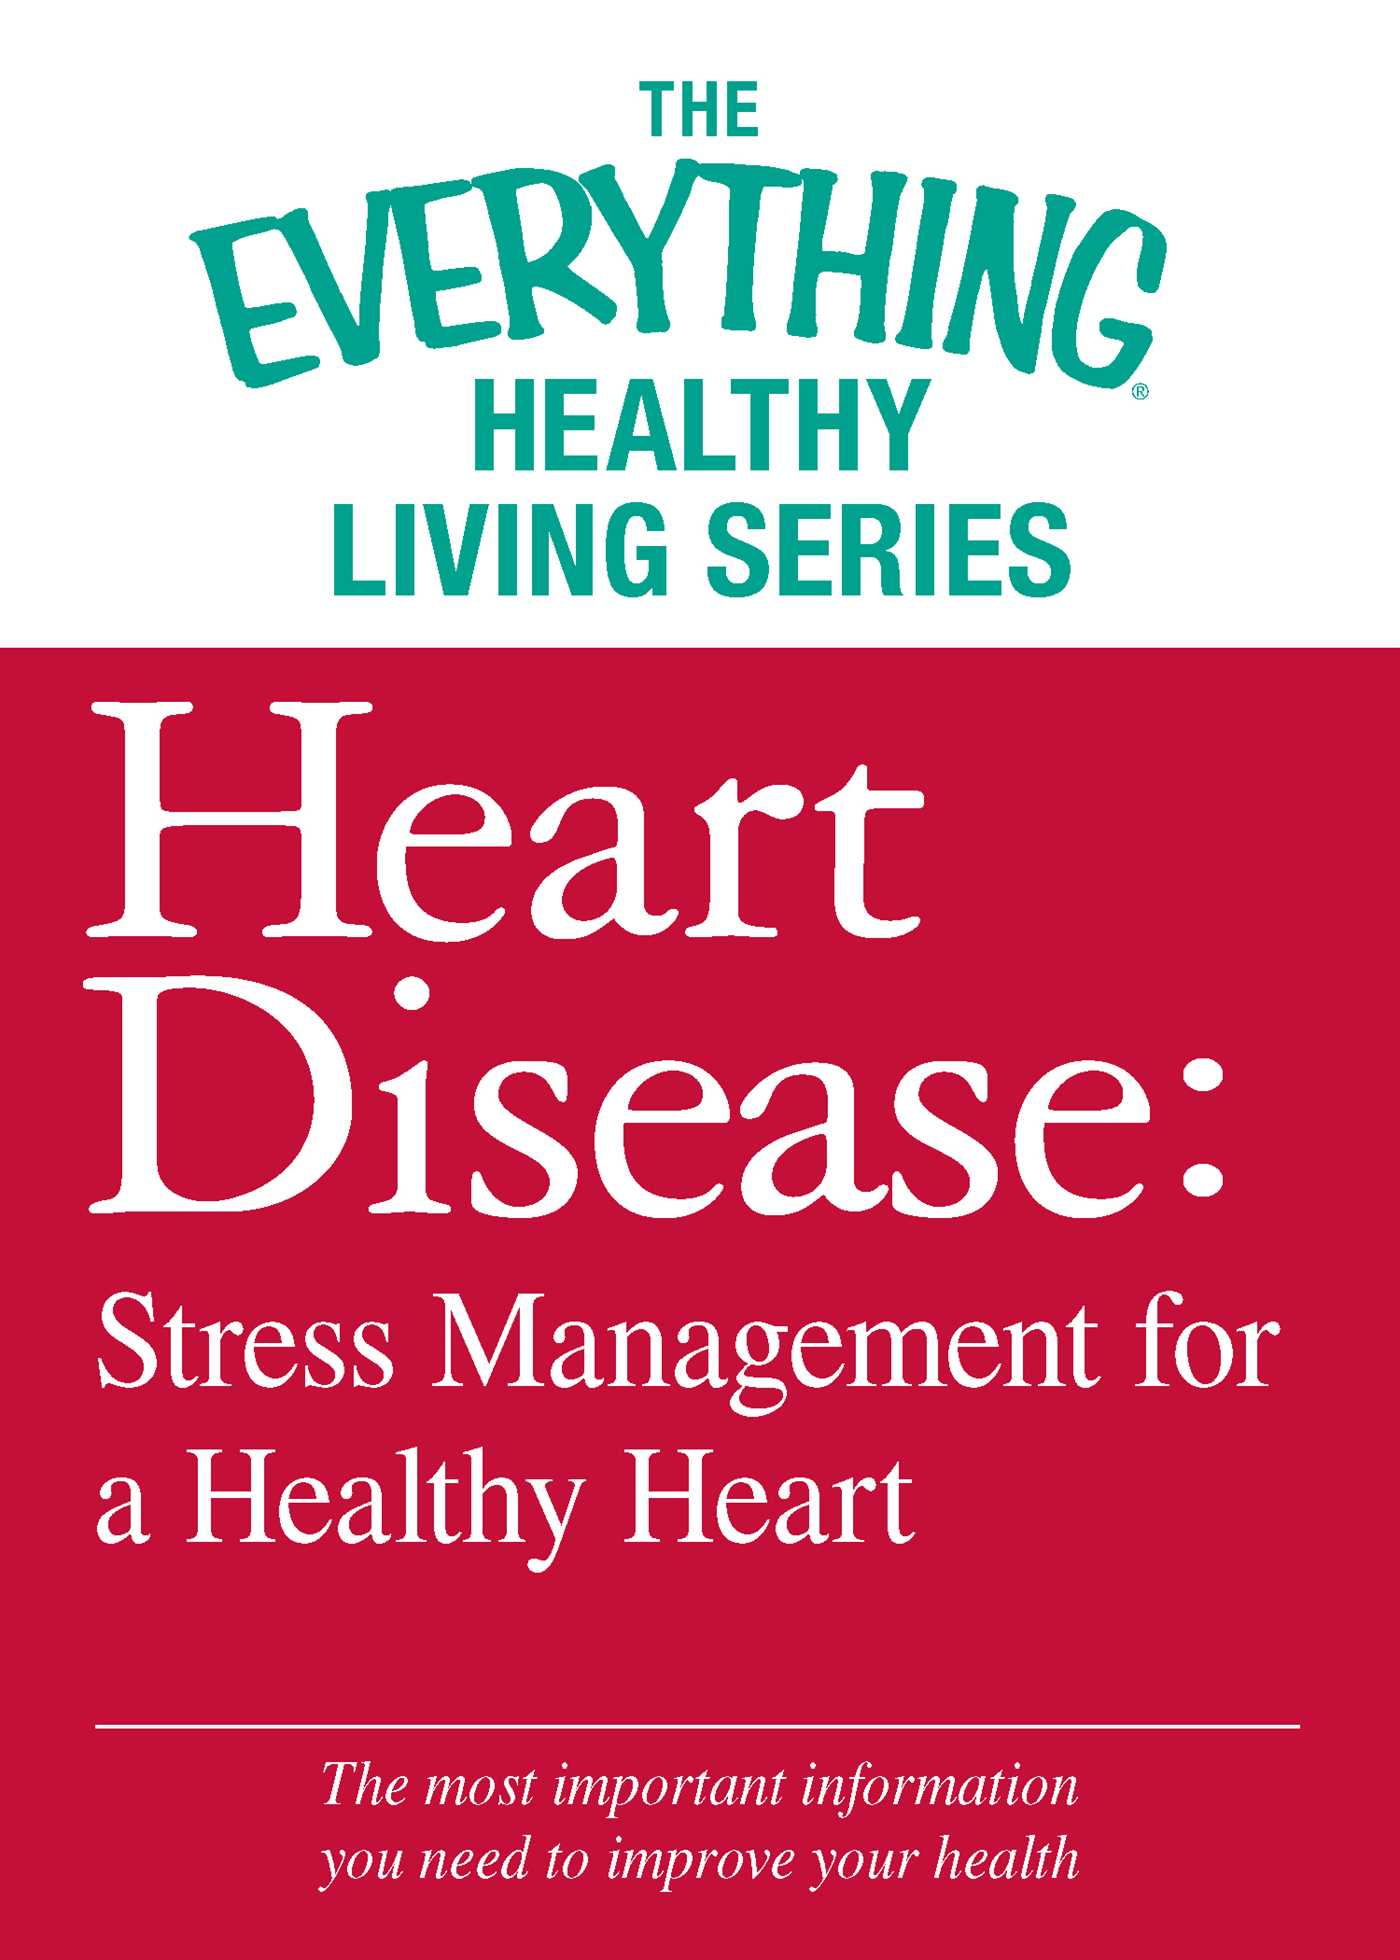 Heart disease stress management for a healthy heart 9781440565809 hr